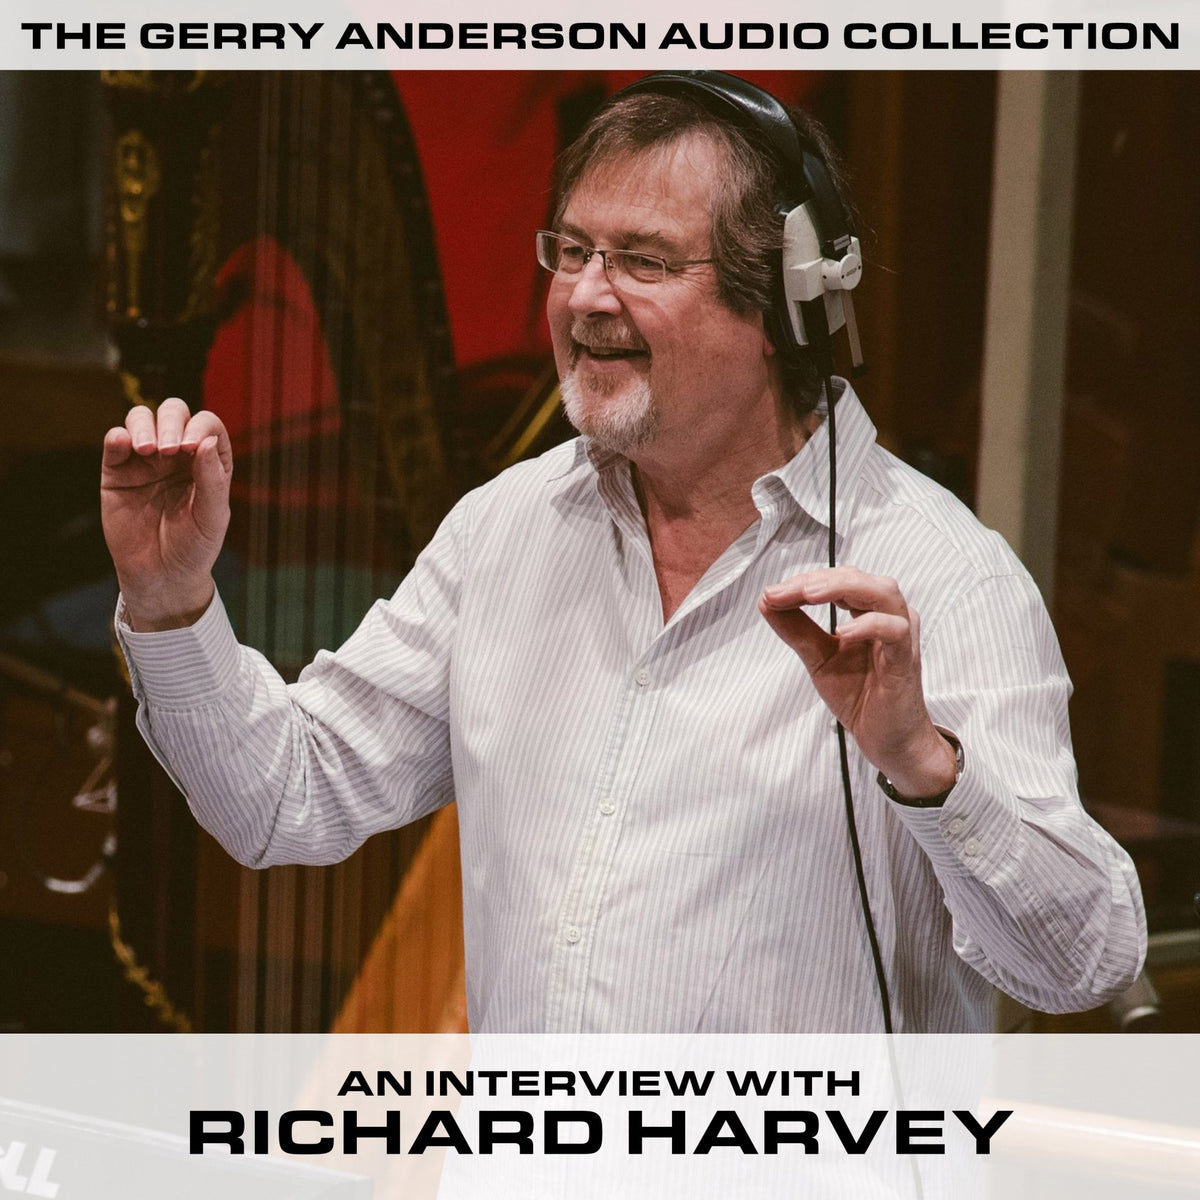 Richard Harvey Archive Interview [DOWNLOAD] - The Gerry Anderson Store